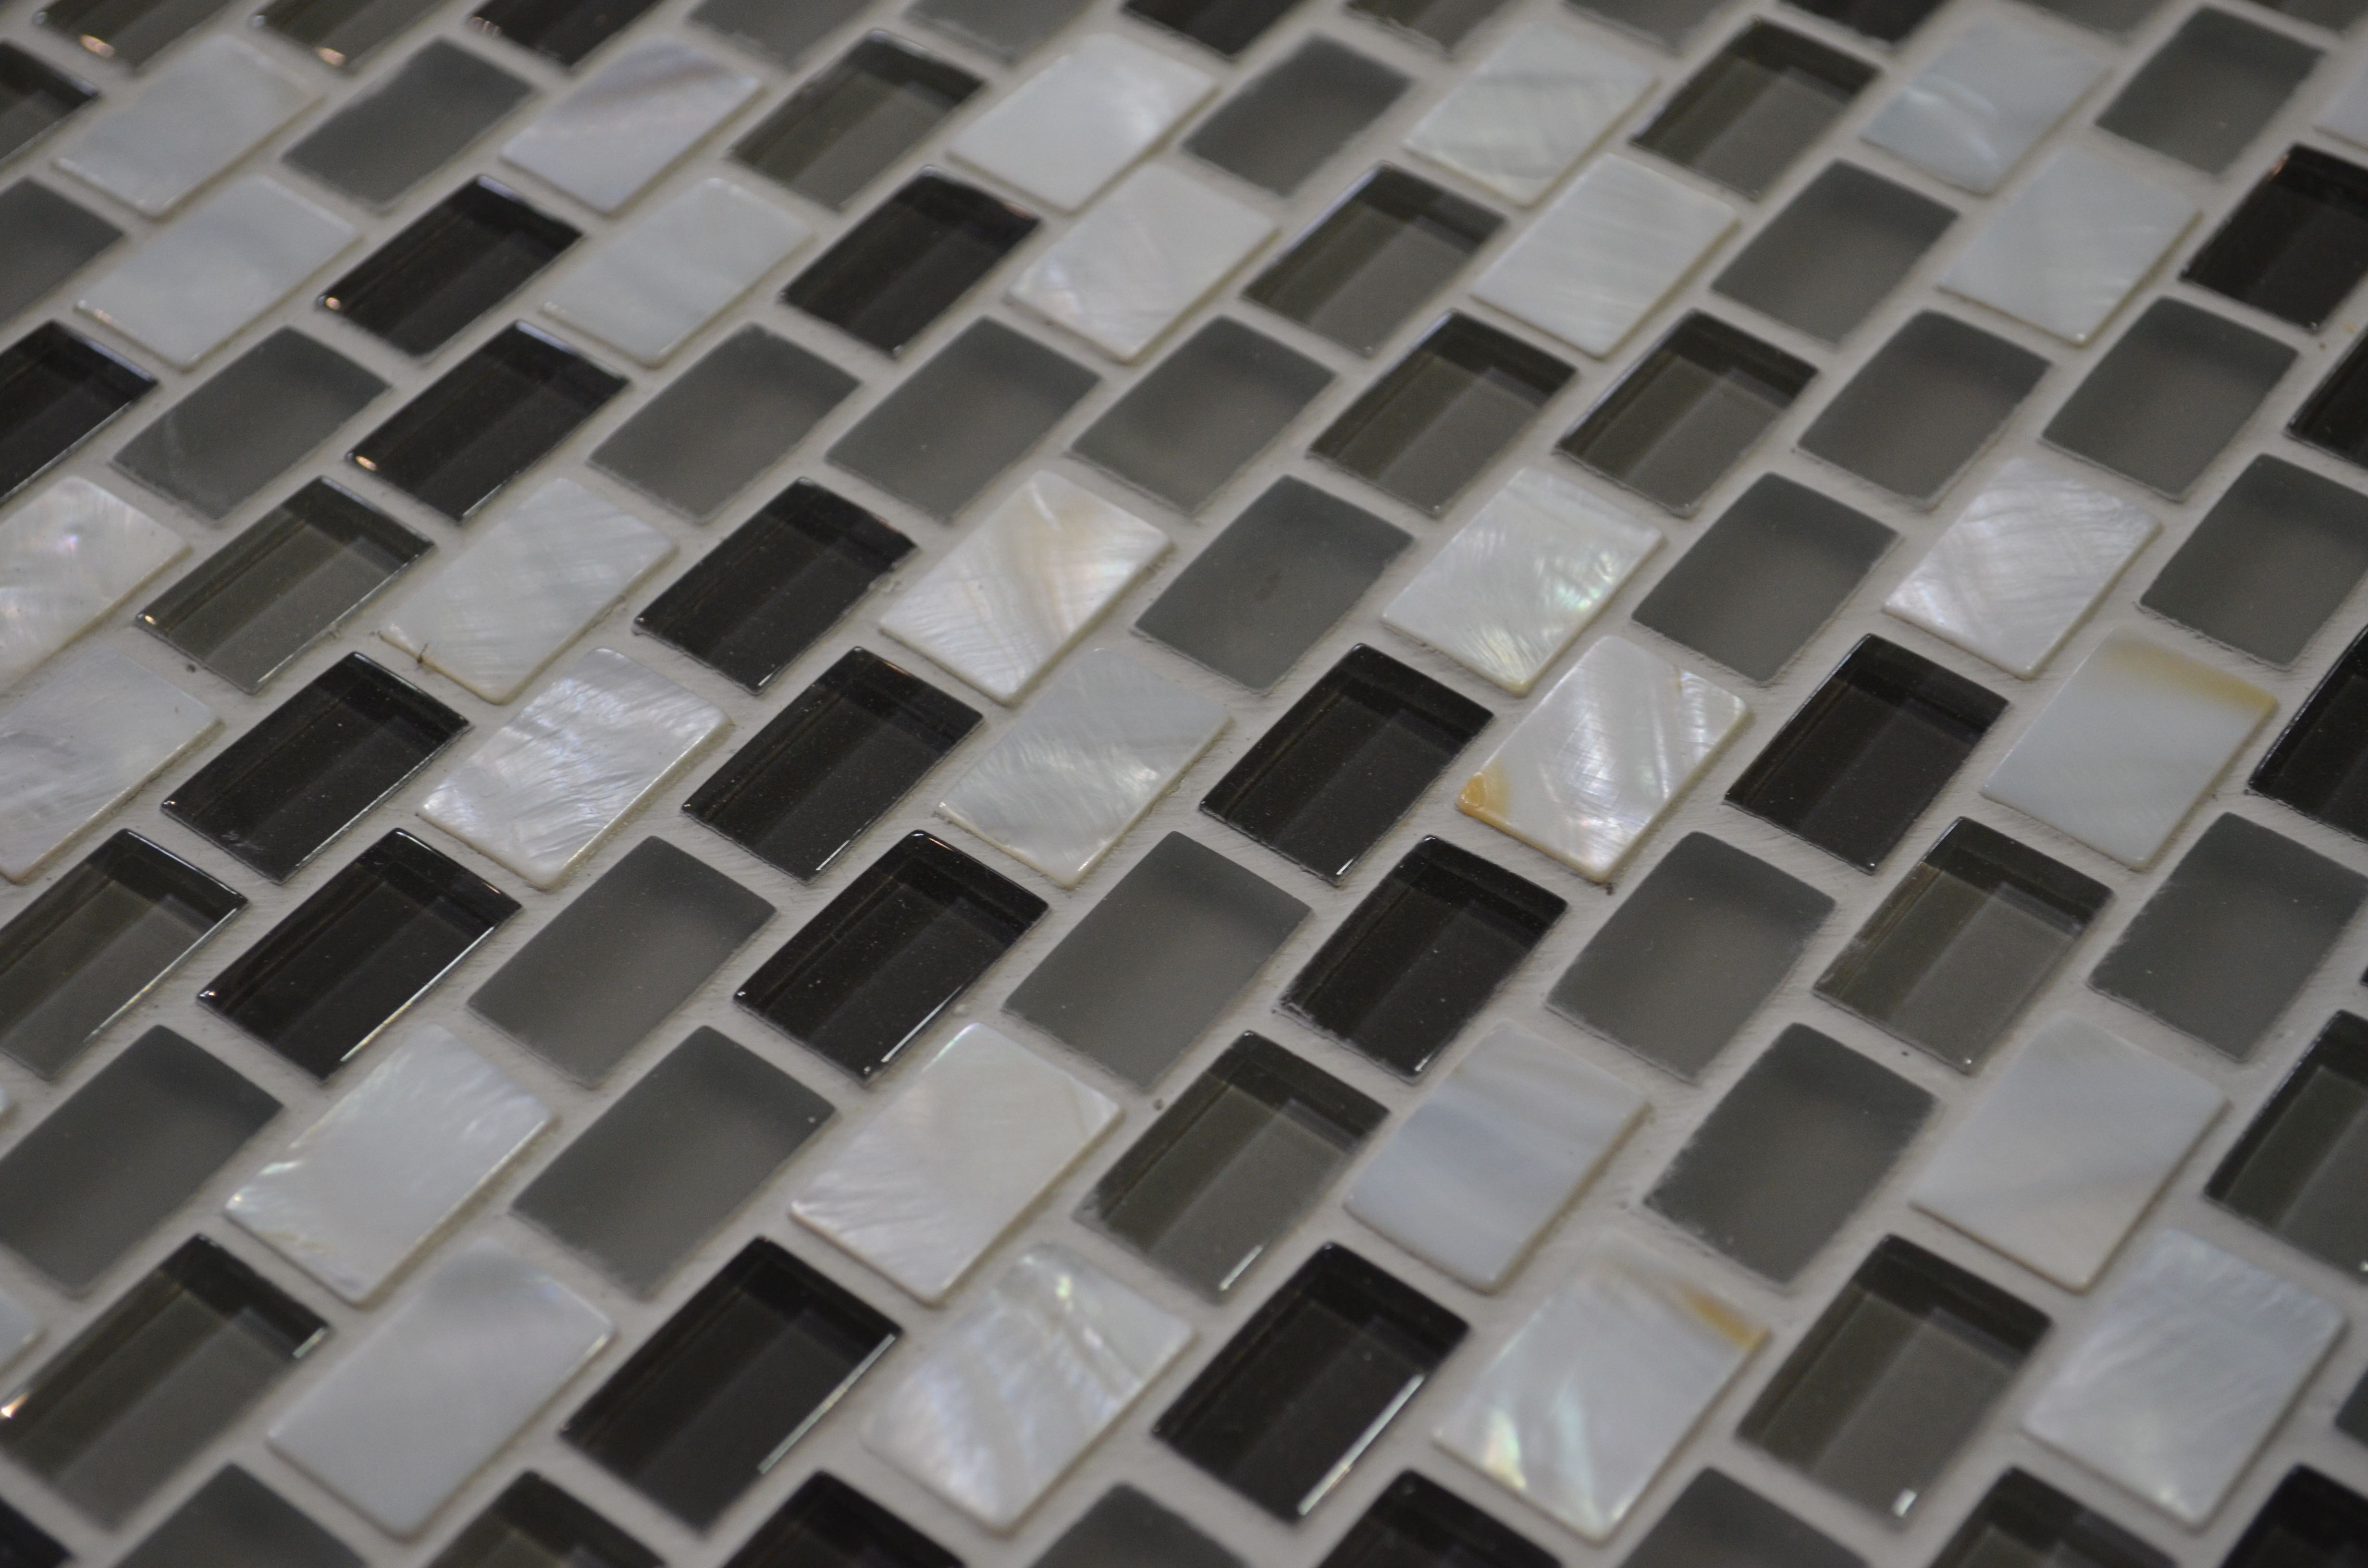 Grout Mosaic Tile Mother Of Pearl Glass Mosaic Makes For Sleek Kitchen Or